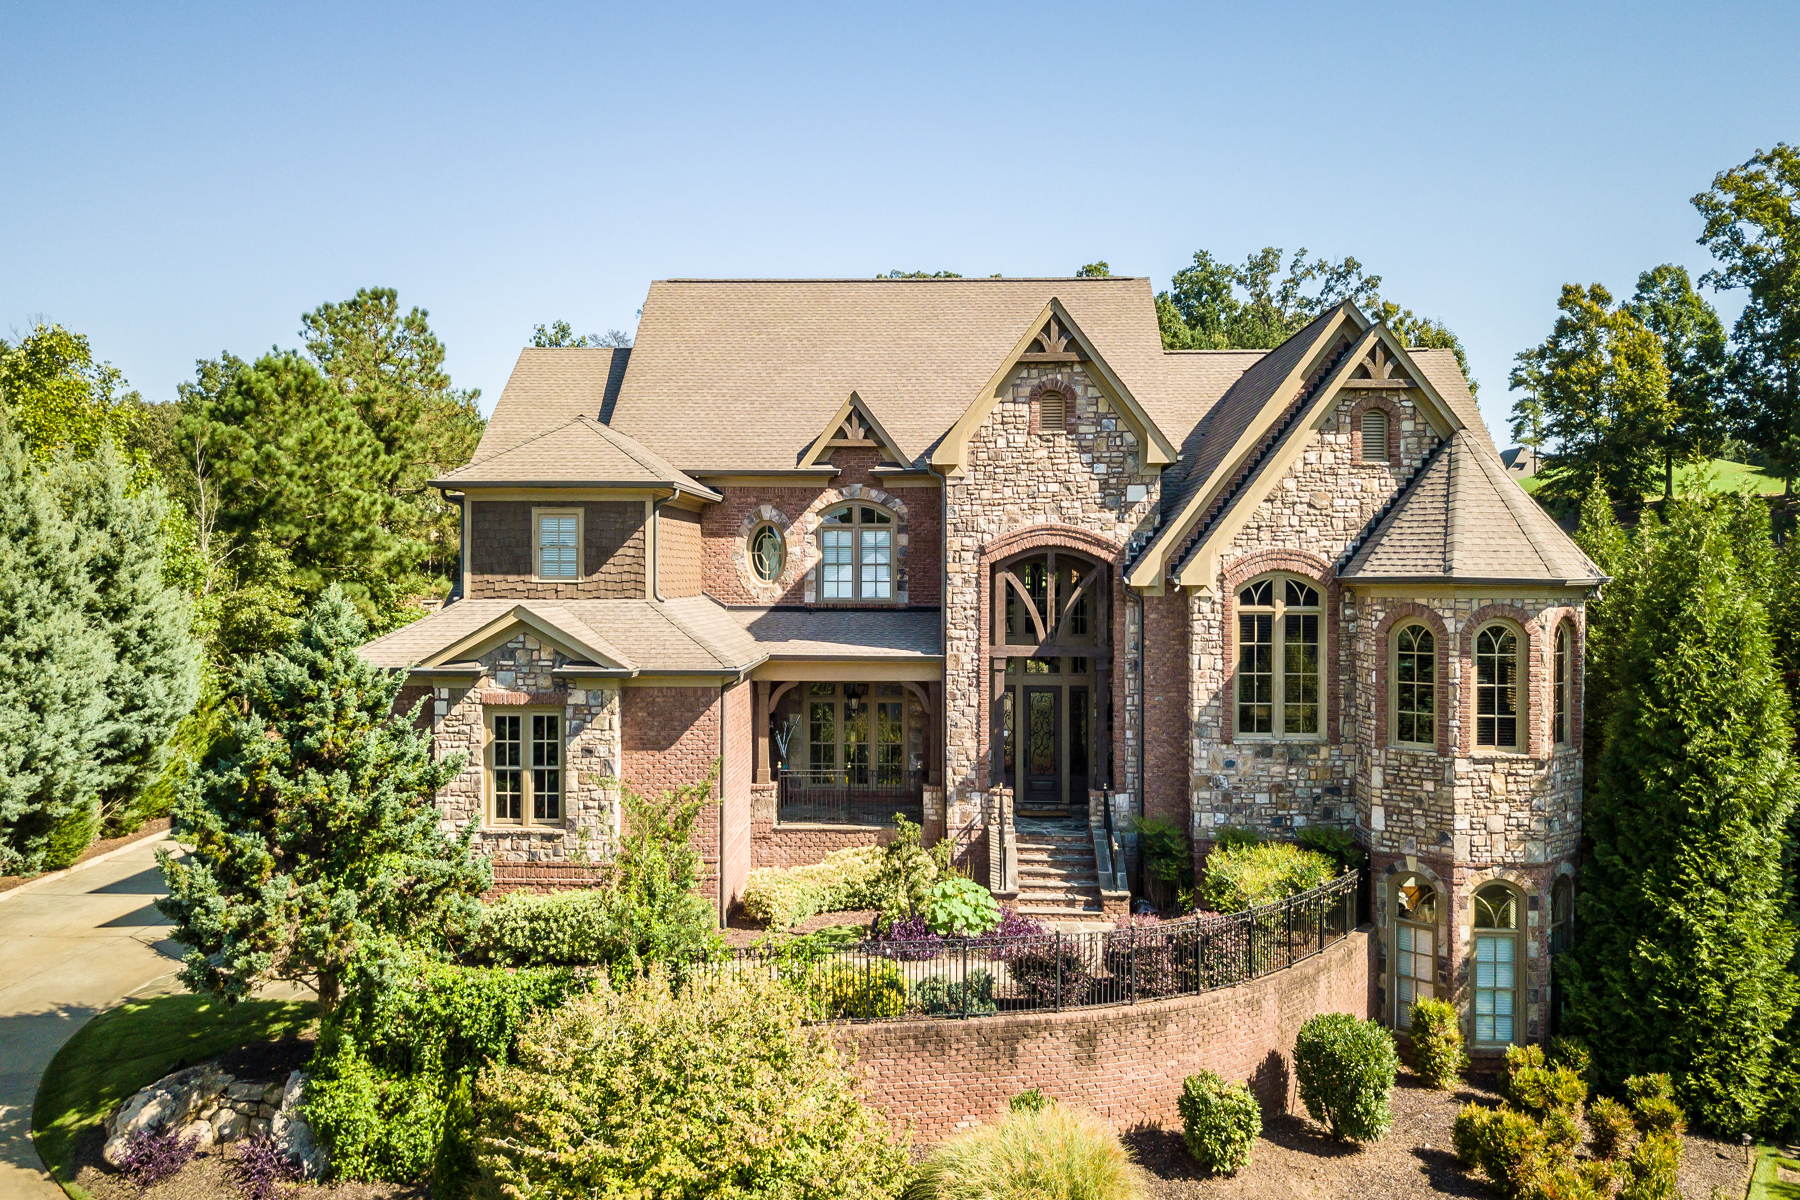 Single Family Home for Sale at Serenity Estate 3094 Watsons Bend Milton, Georgia 30004 United States